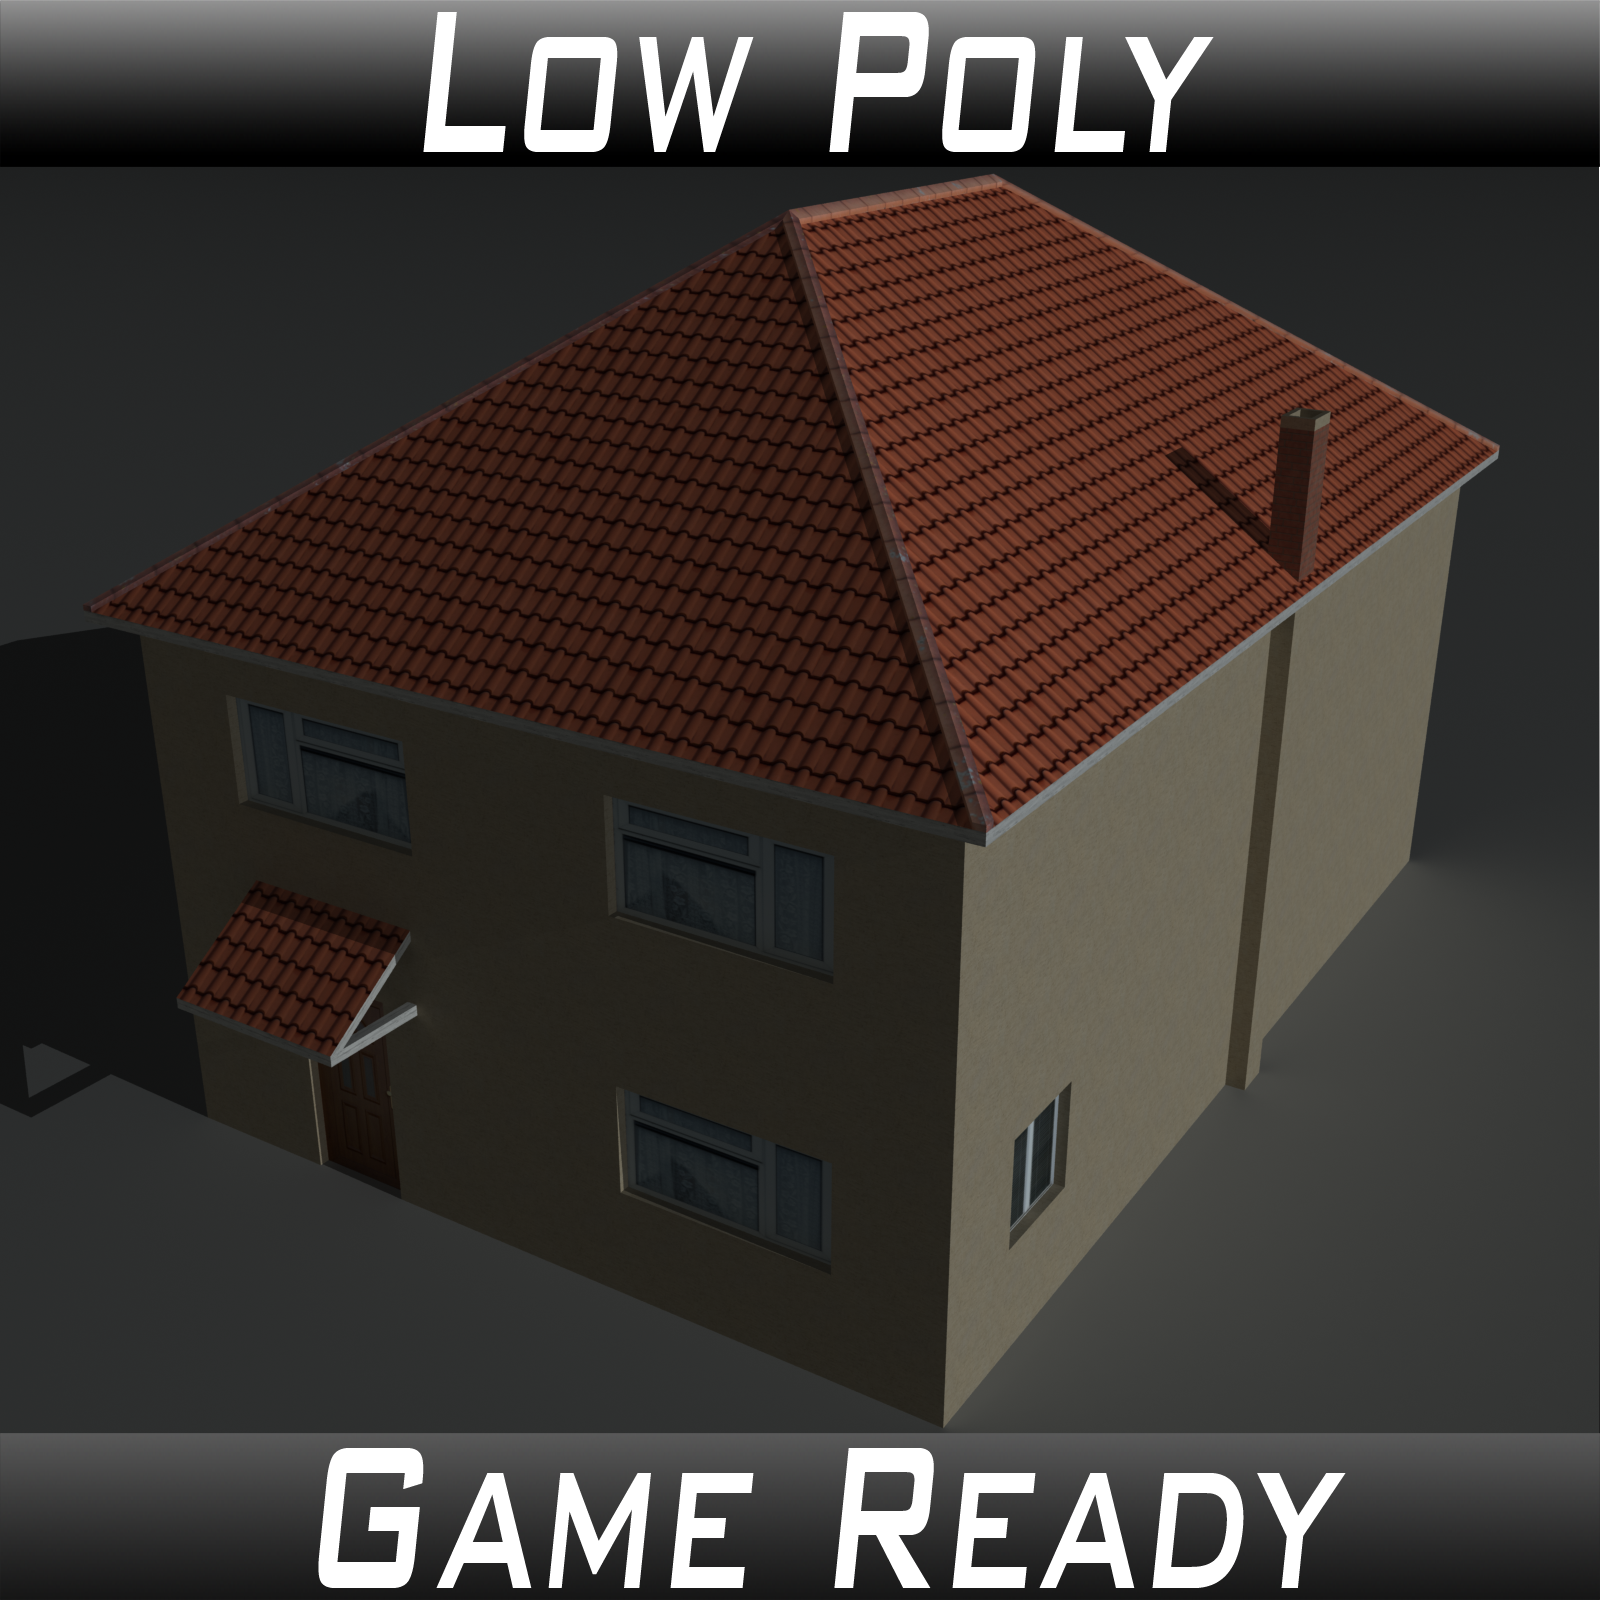 Low Poly House 12 - Extended License by 3dlands